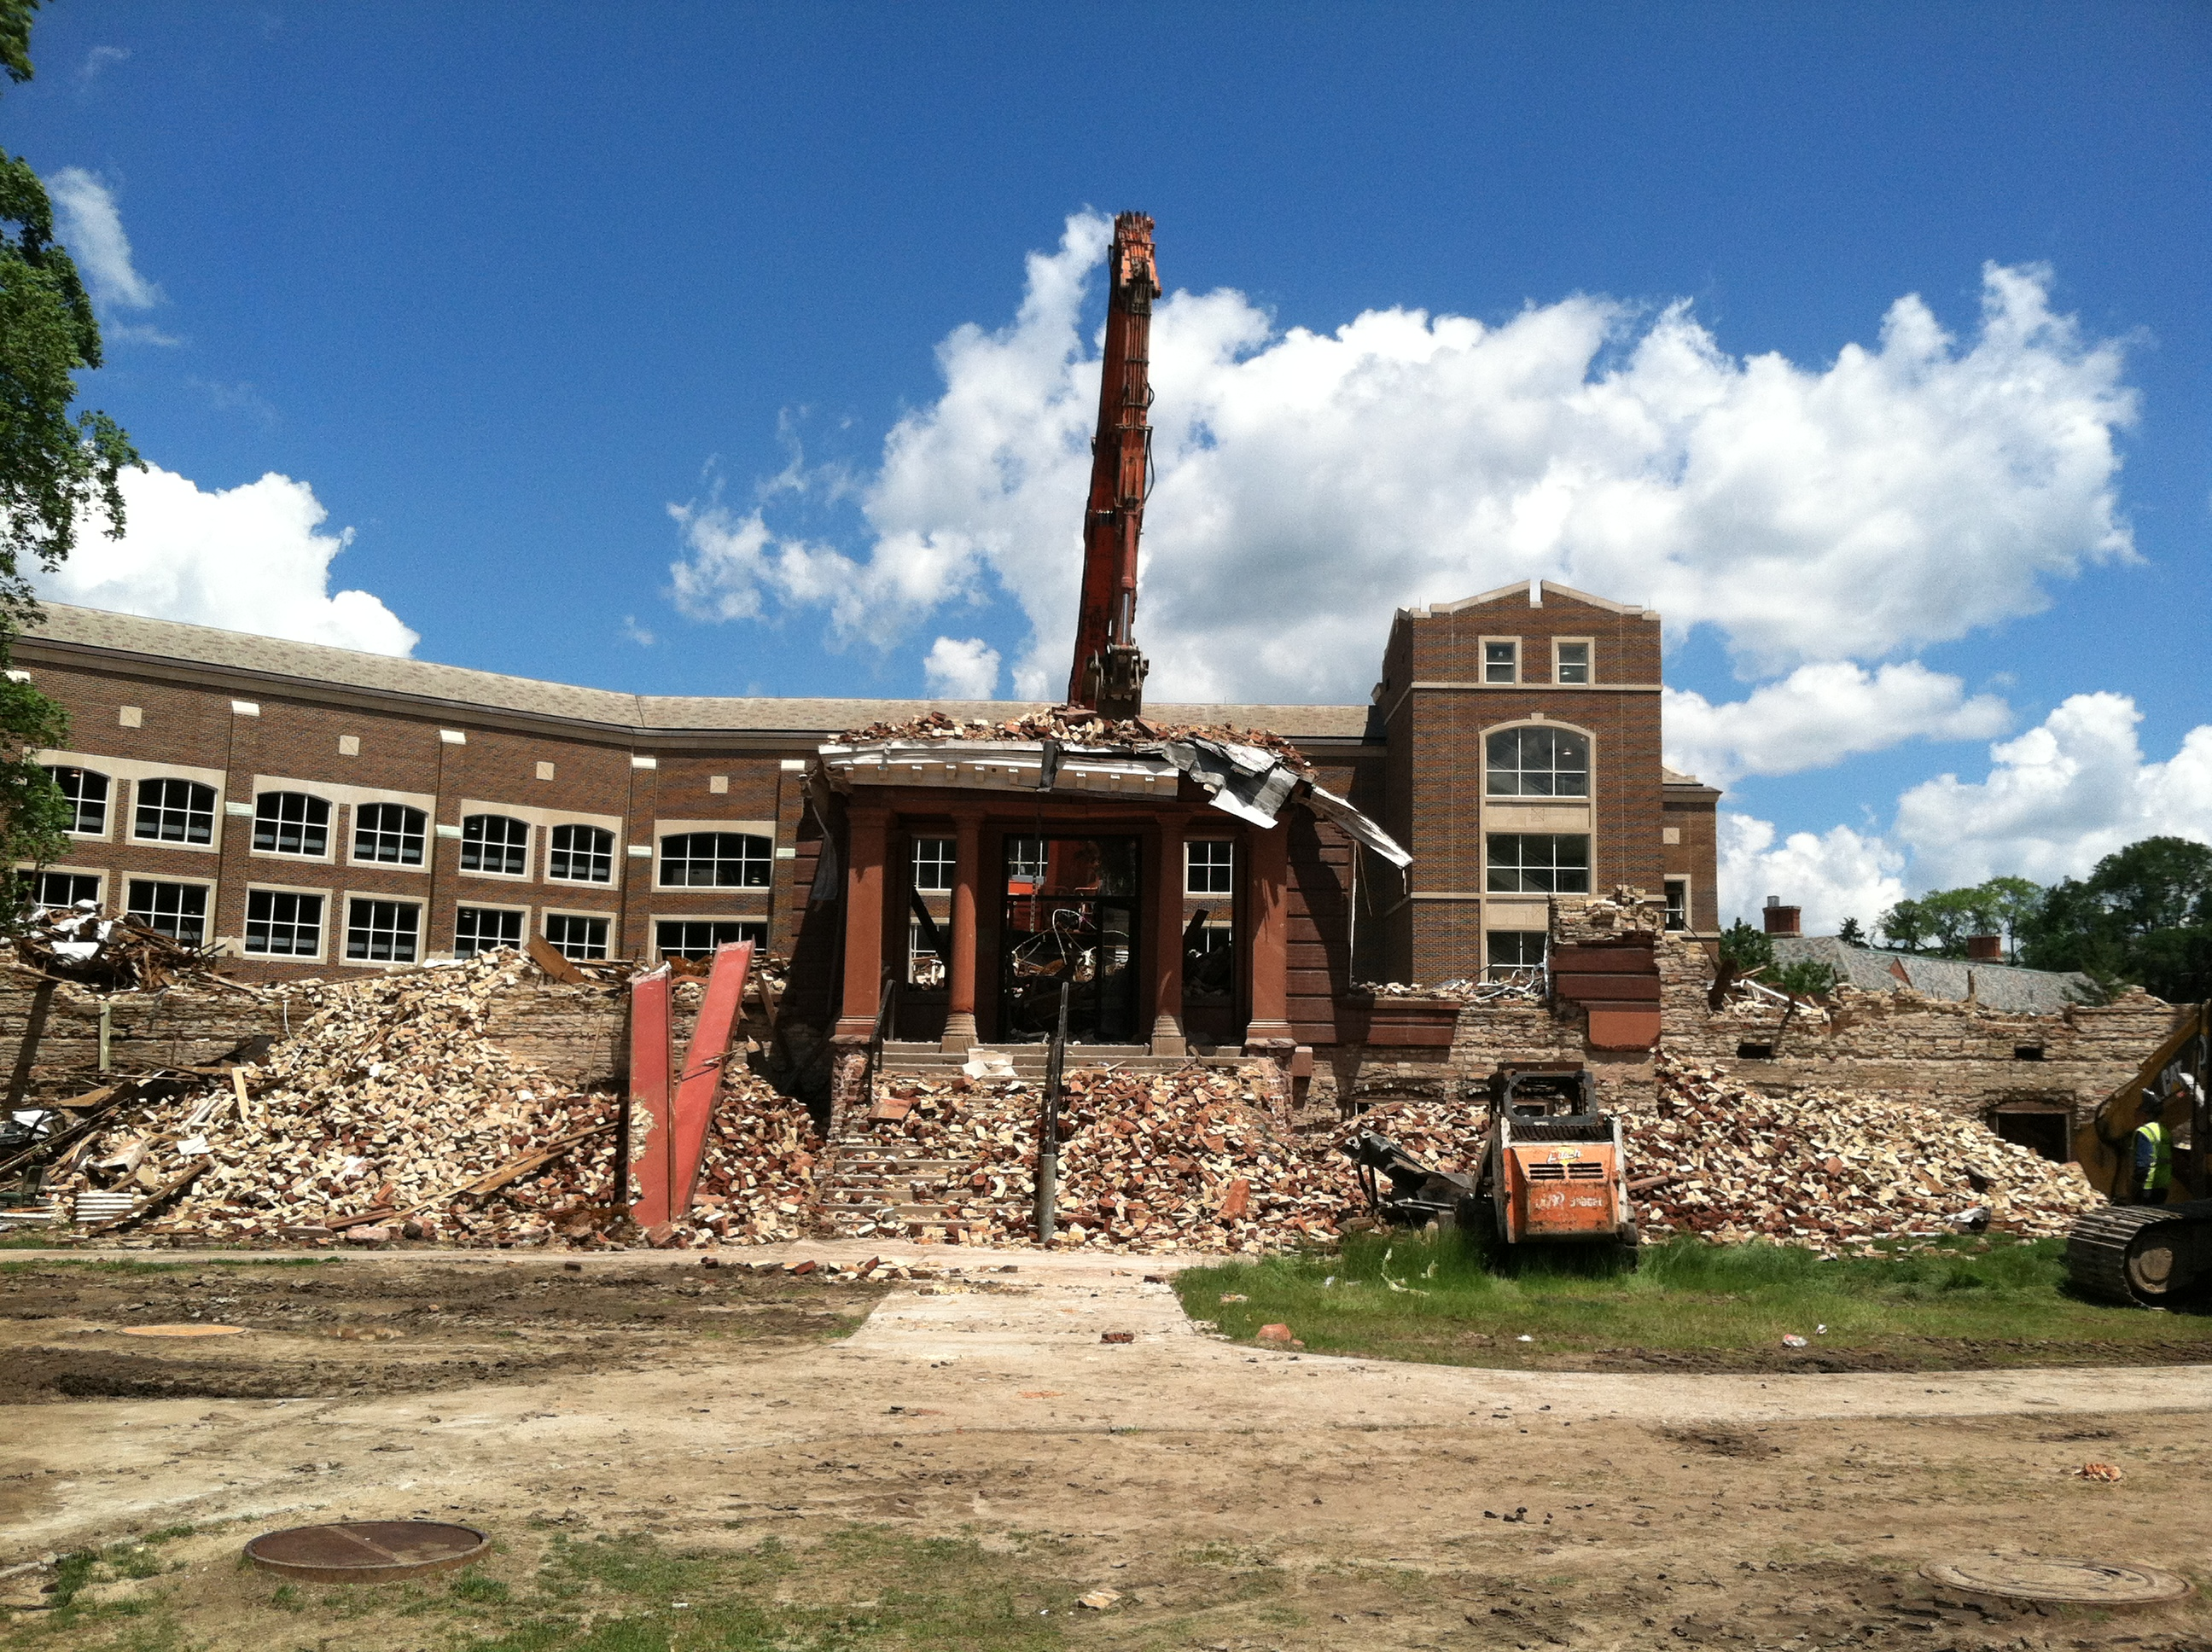 Final days of Morrill Hall, via Katy Meyers